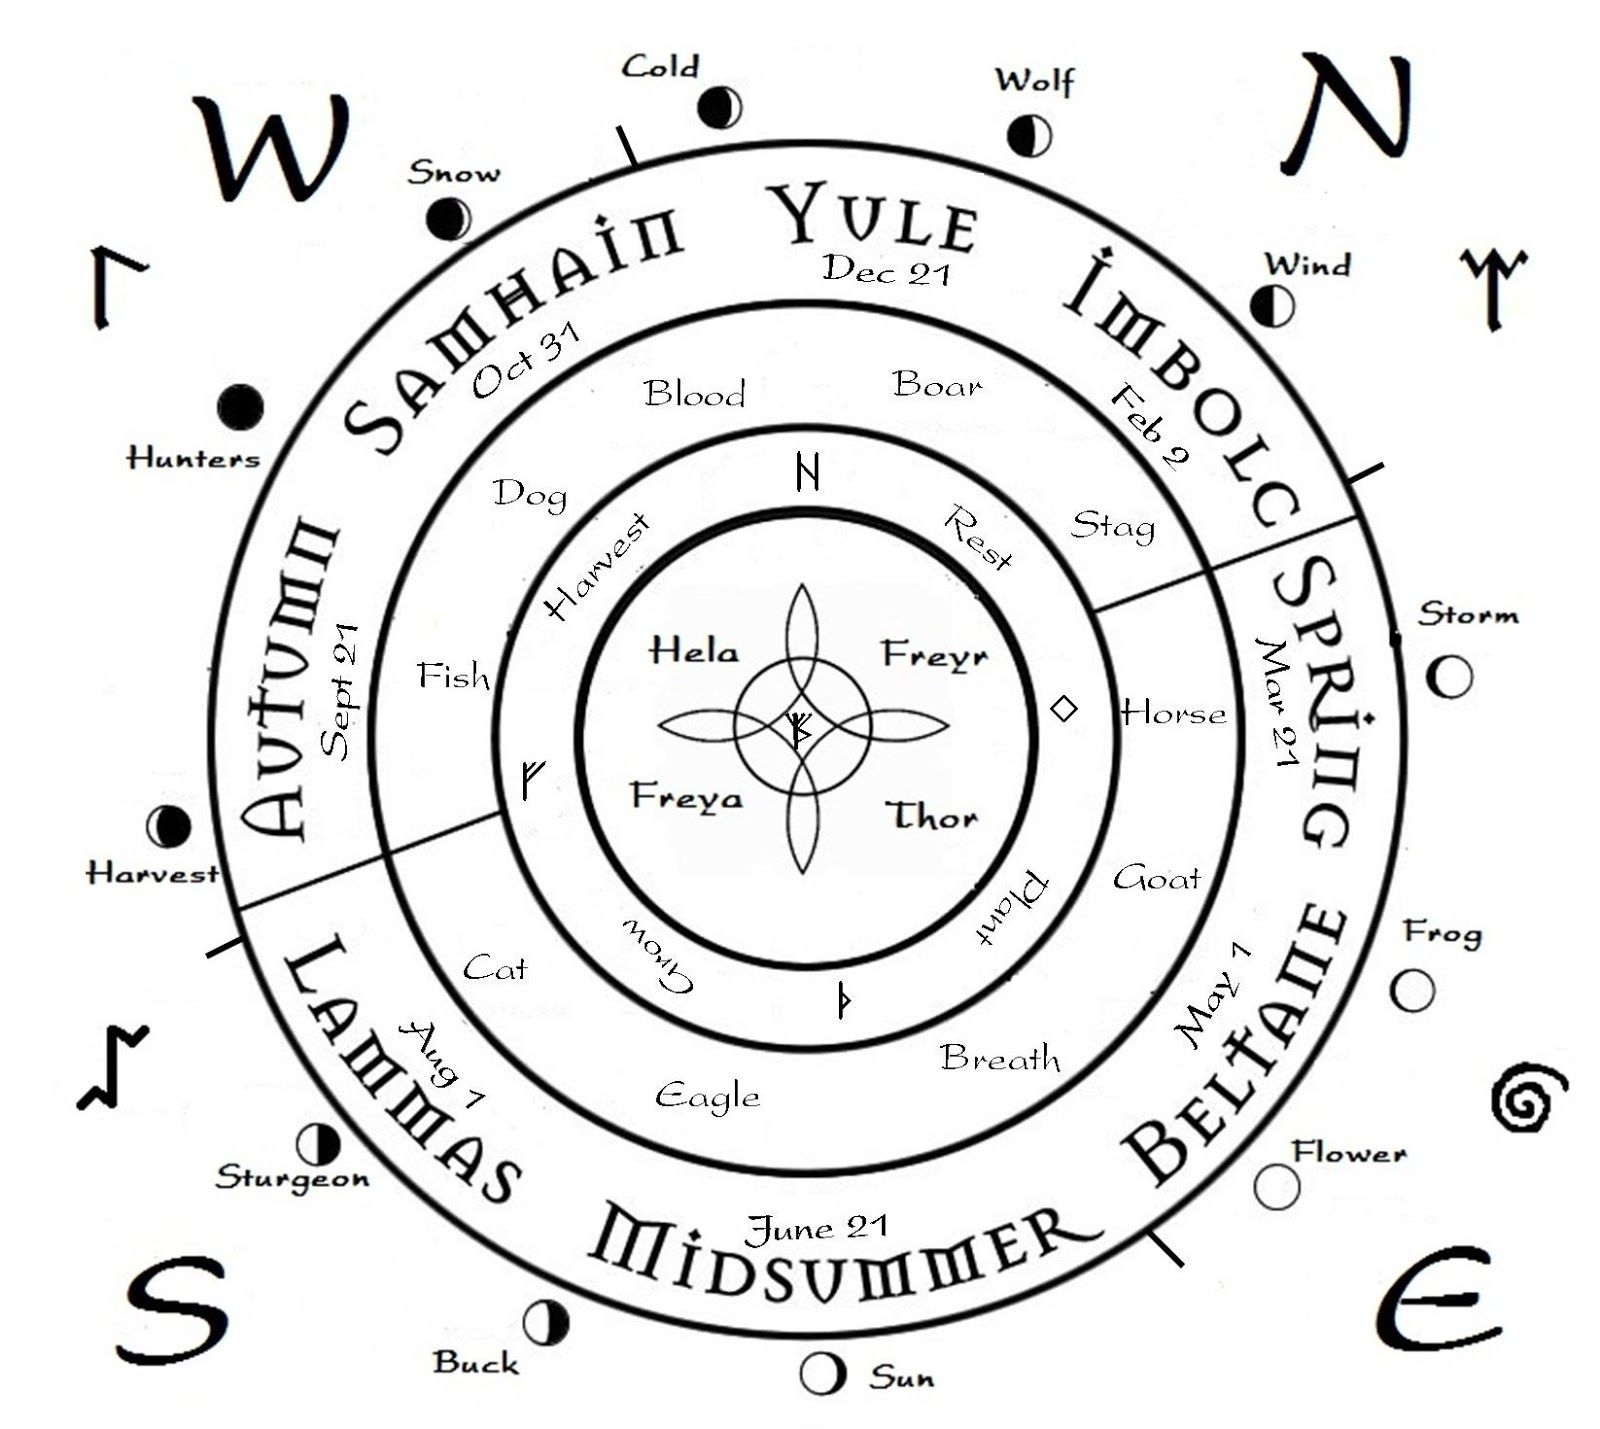 Protection symbols wiccan choice image symbol and sign ideas protection symbols wiccan image collections symbol and sign ideas protection symbols wiccan choice image symbol and buycottarizona Choice Image